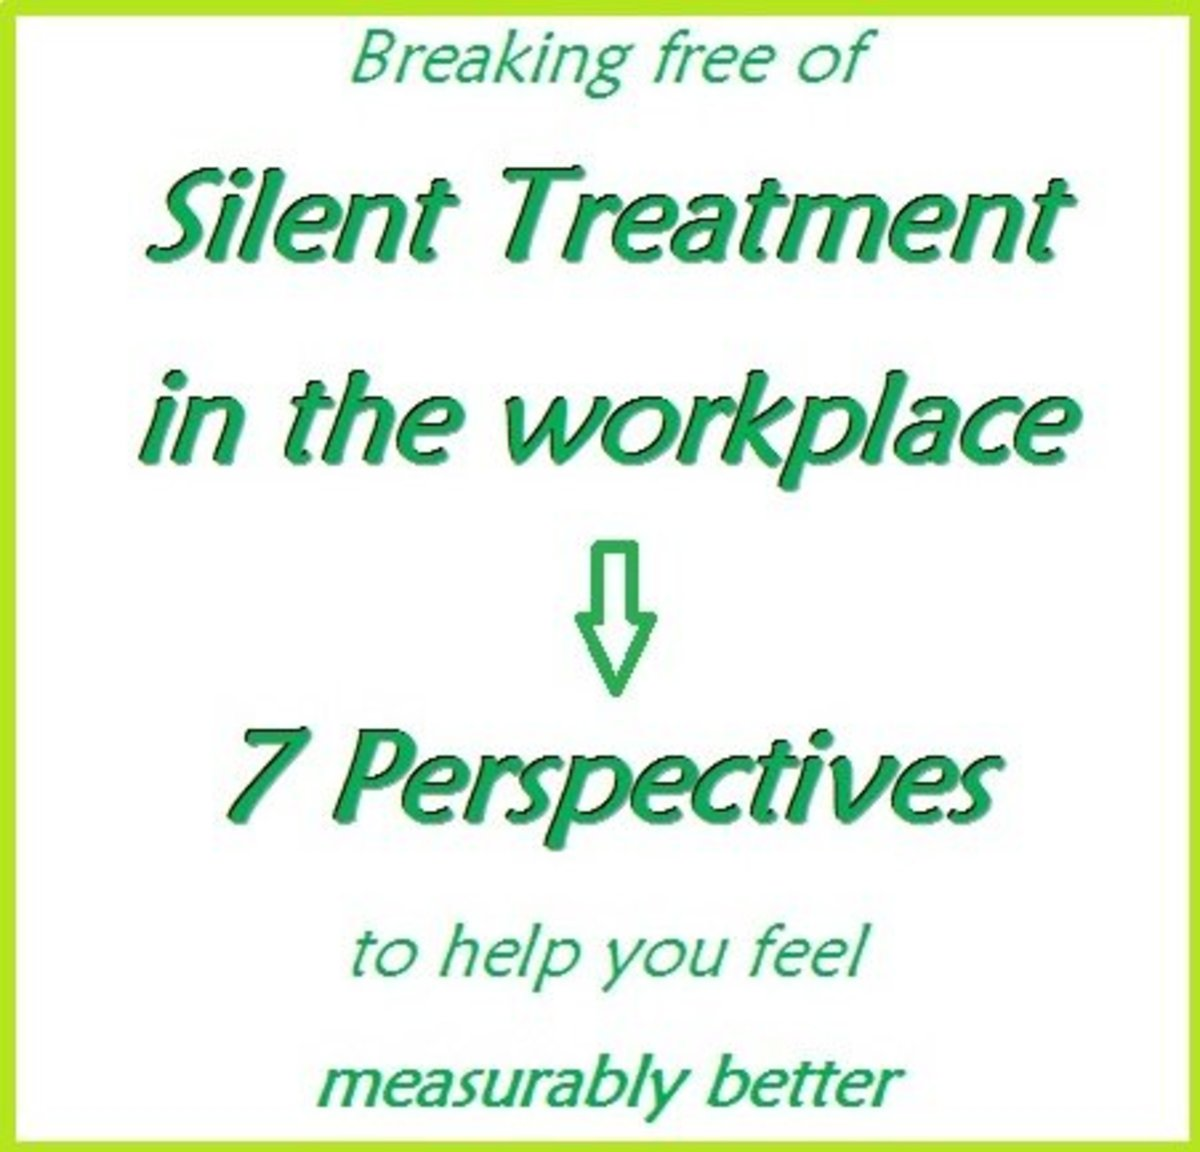 Getting the Silent Treatment at work – What NOT to do!